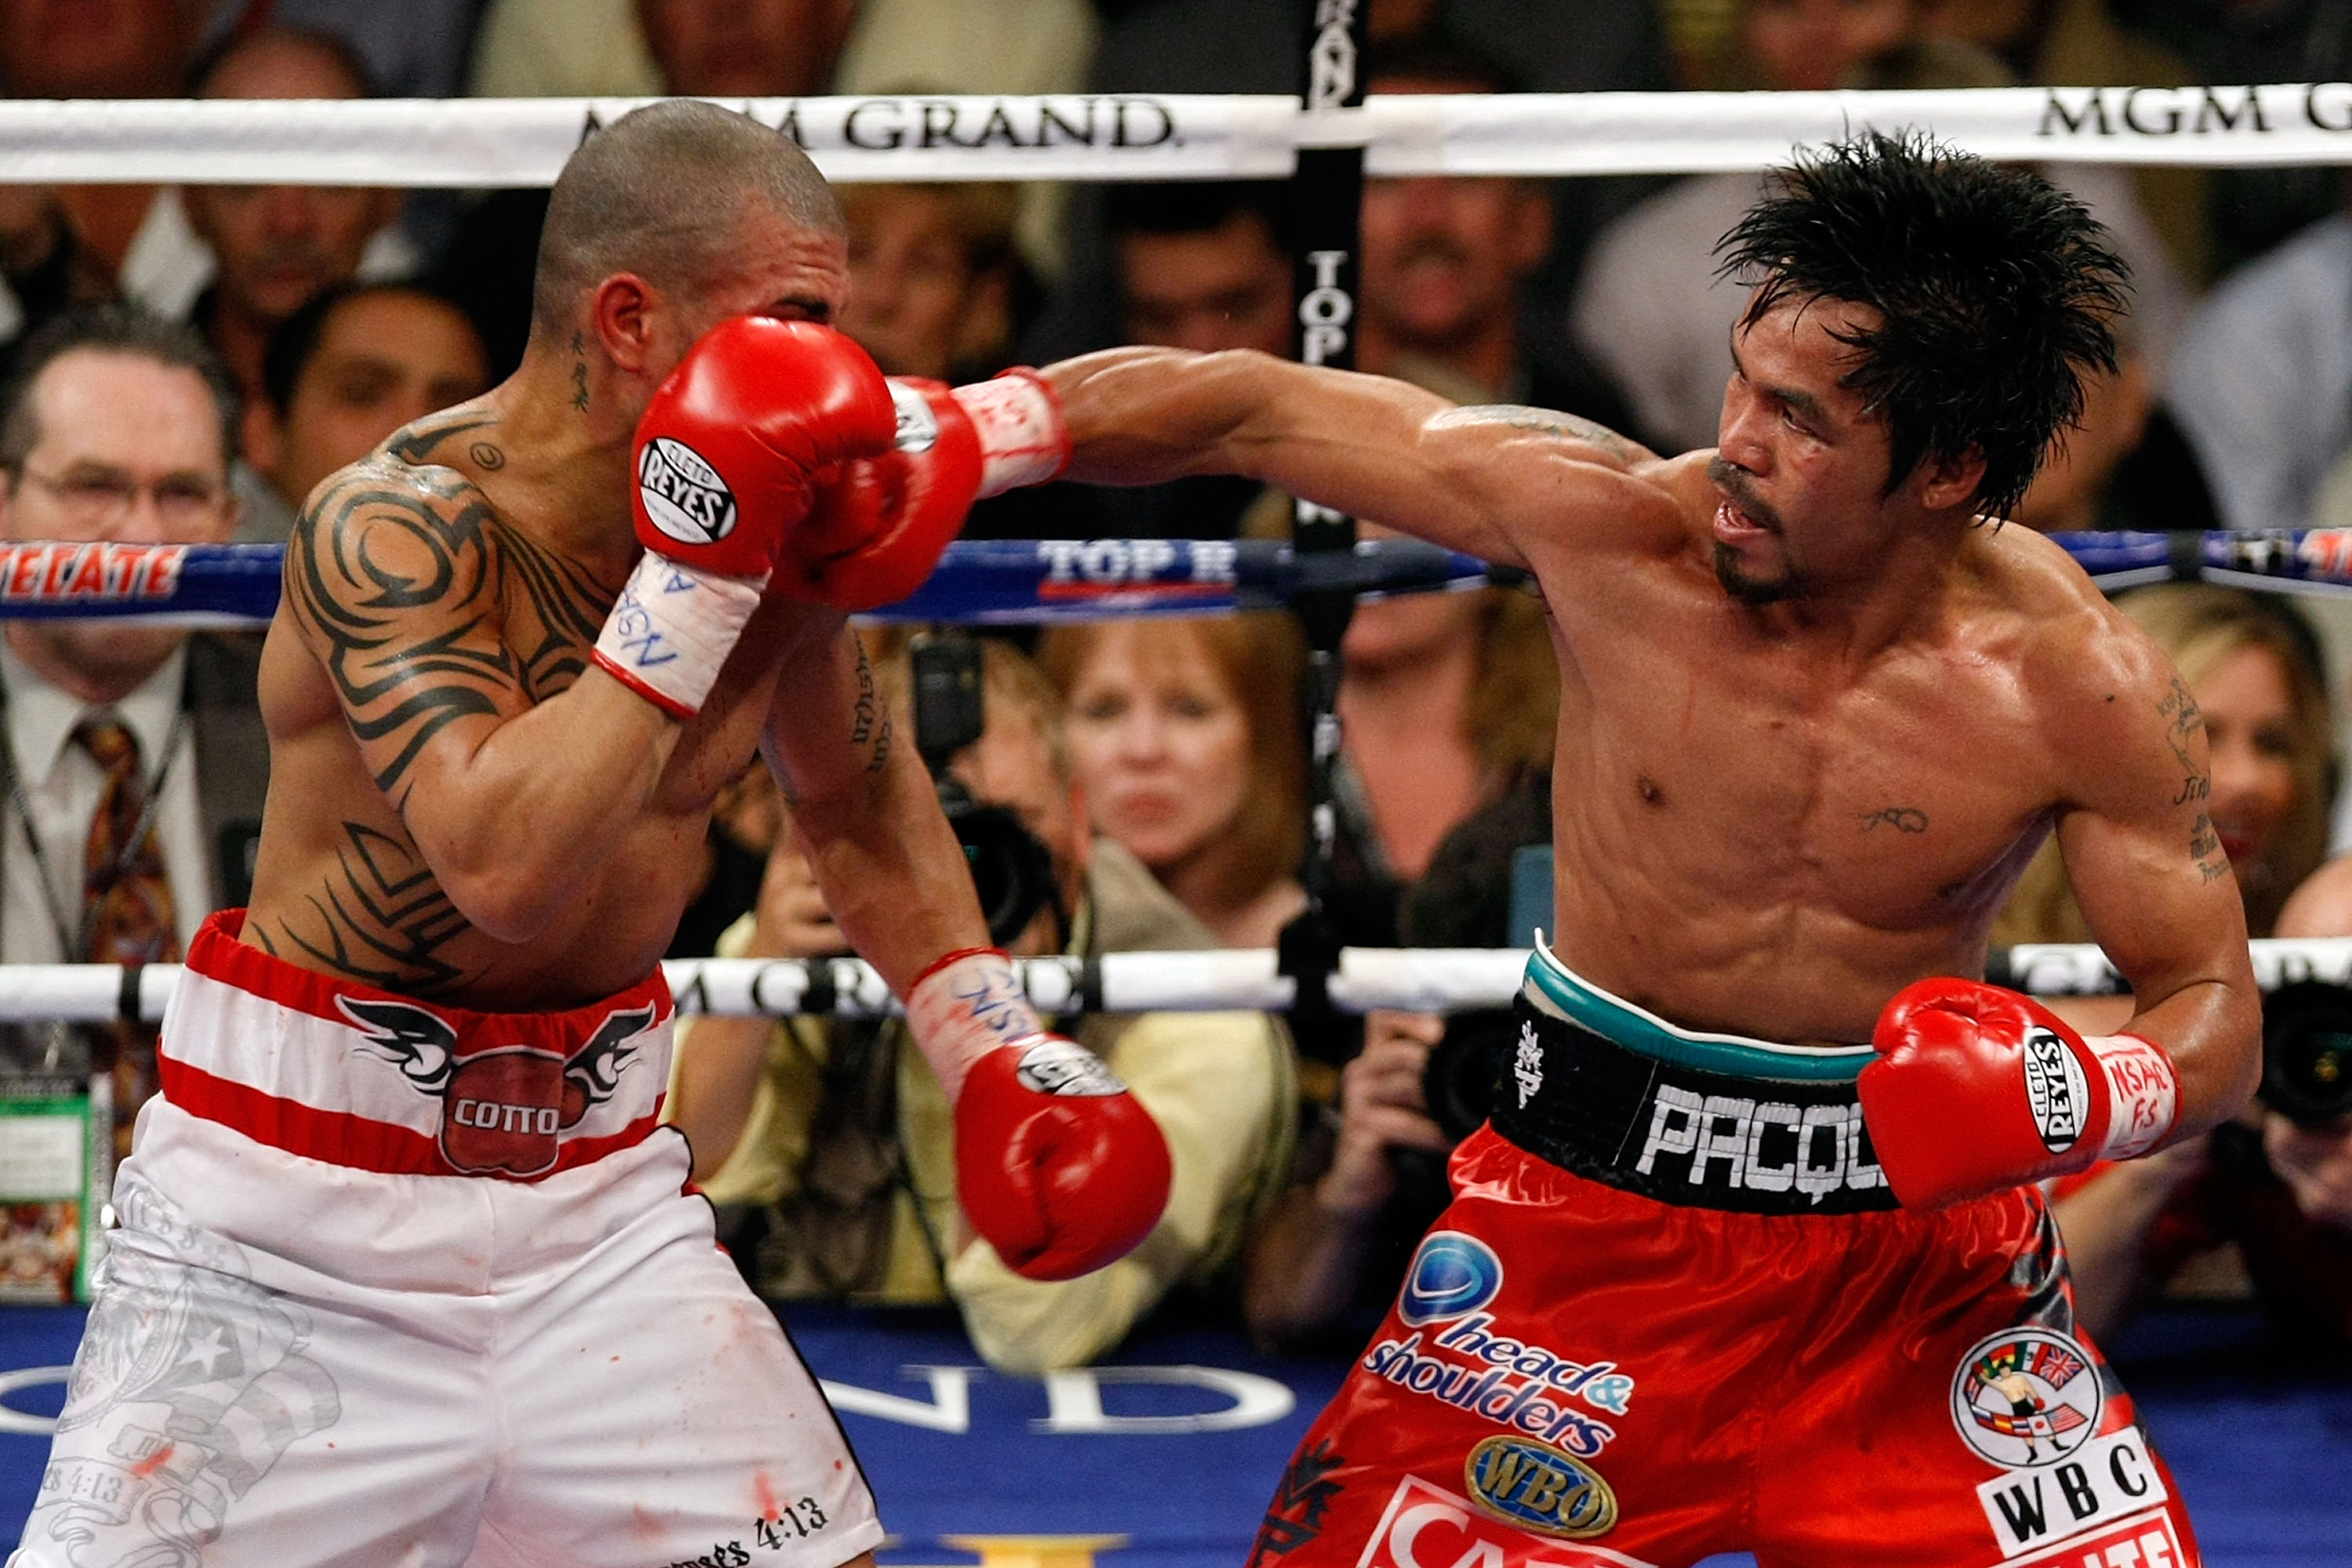 LAS VEGAS - NOVEMBER 14:  (R-L) Manny Pacquiao throws a right to the head of Miguel Cotto during their WBO welterweight title fight at the MGM Grand Garden Arena on November 14, 2009 in Las Vegas, Nevada. Pacquiao defeated Cotto by 12th round TKO.  (Photo